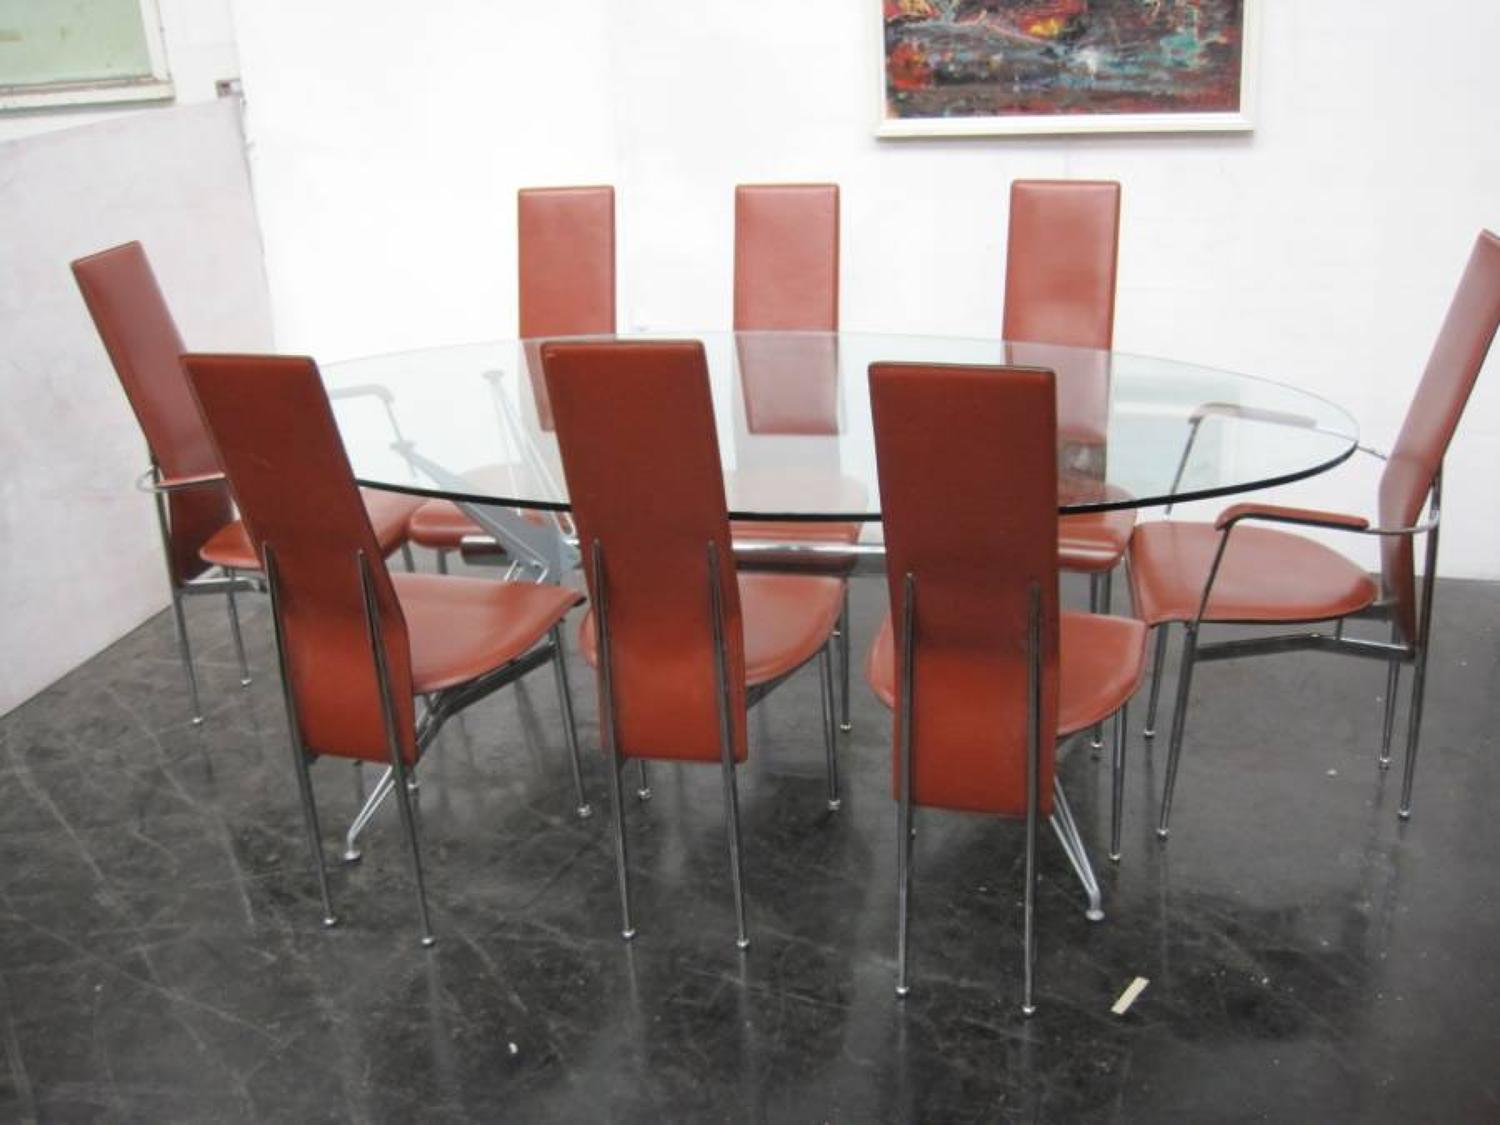 Giancarlo Vegni chairs and table